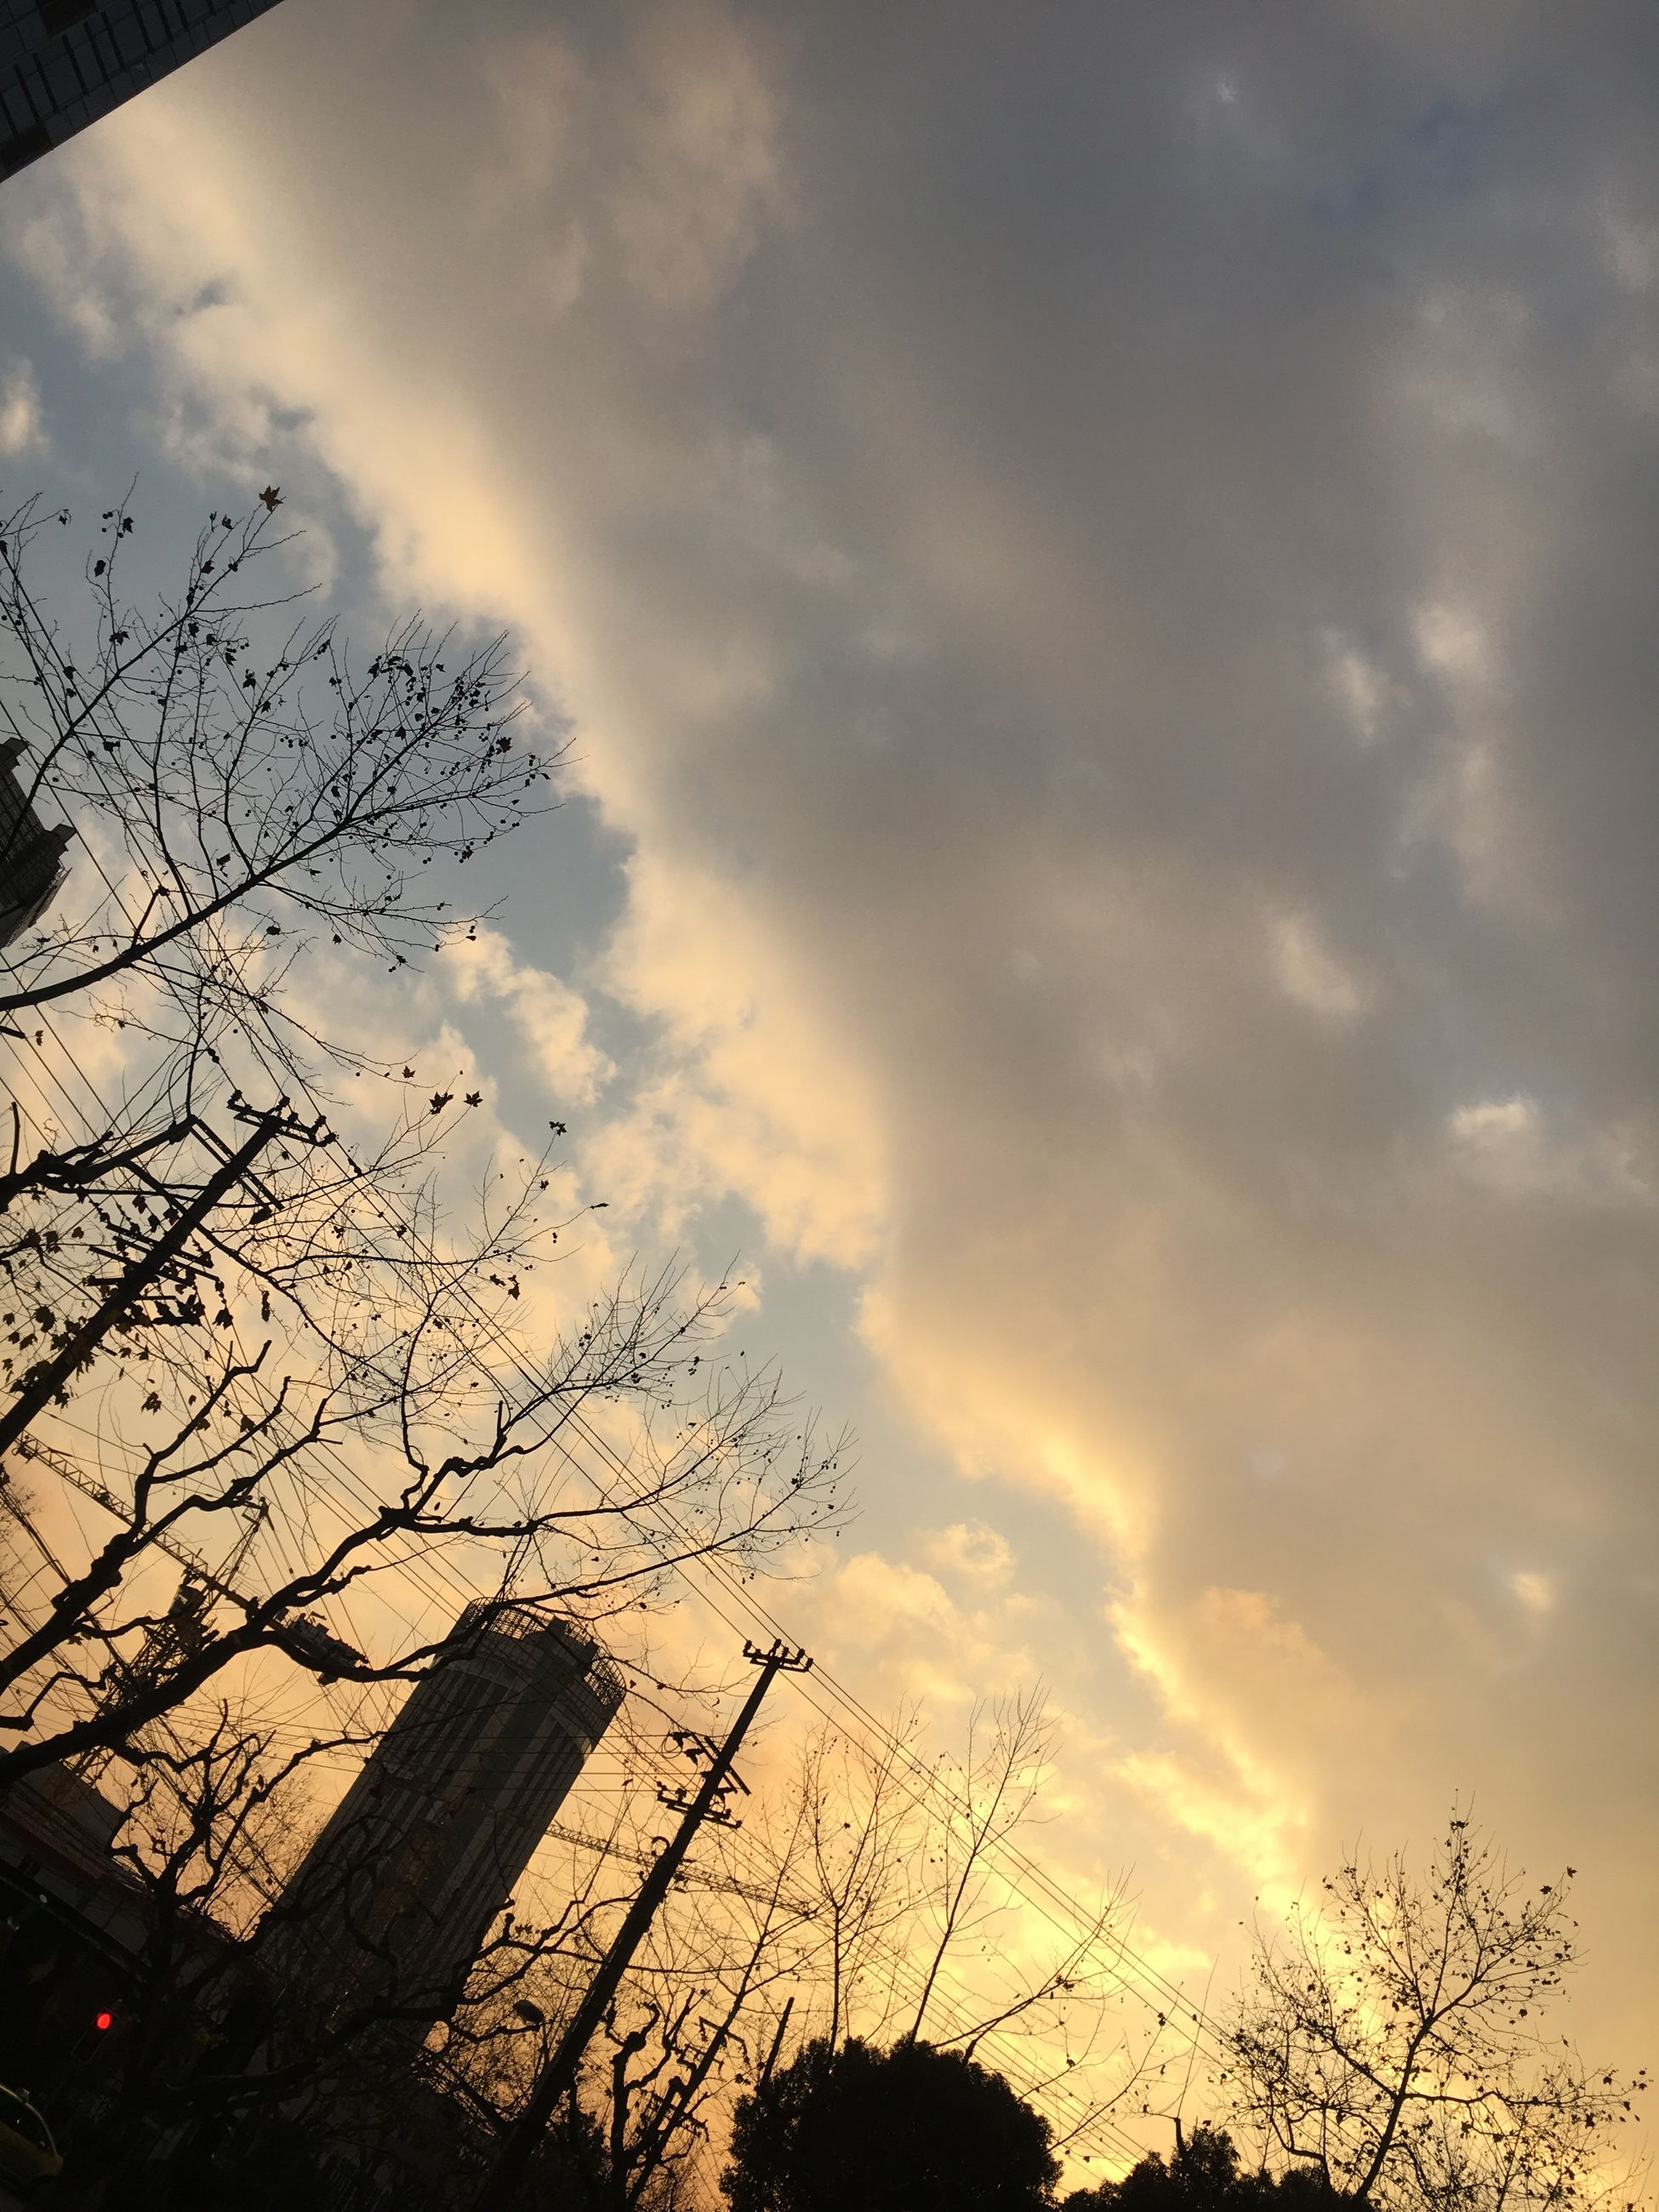 sky, sunset, cloud - sky, nature, no people, dusk, silhouette, beauty in nature, low angle view, dramatic sky, outdoors, tree, animal themes, day